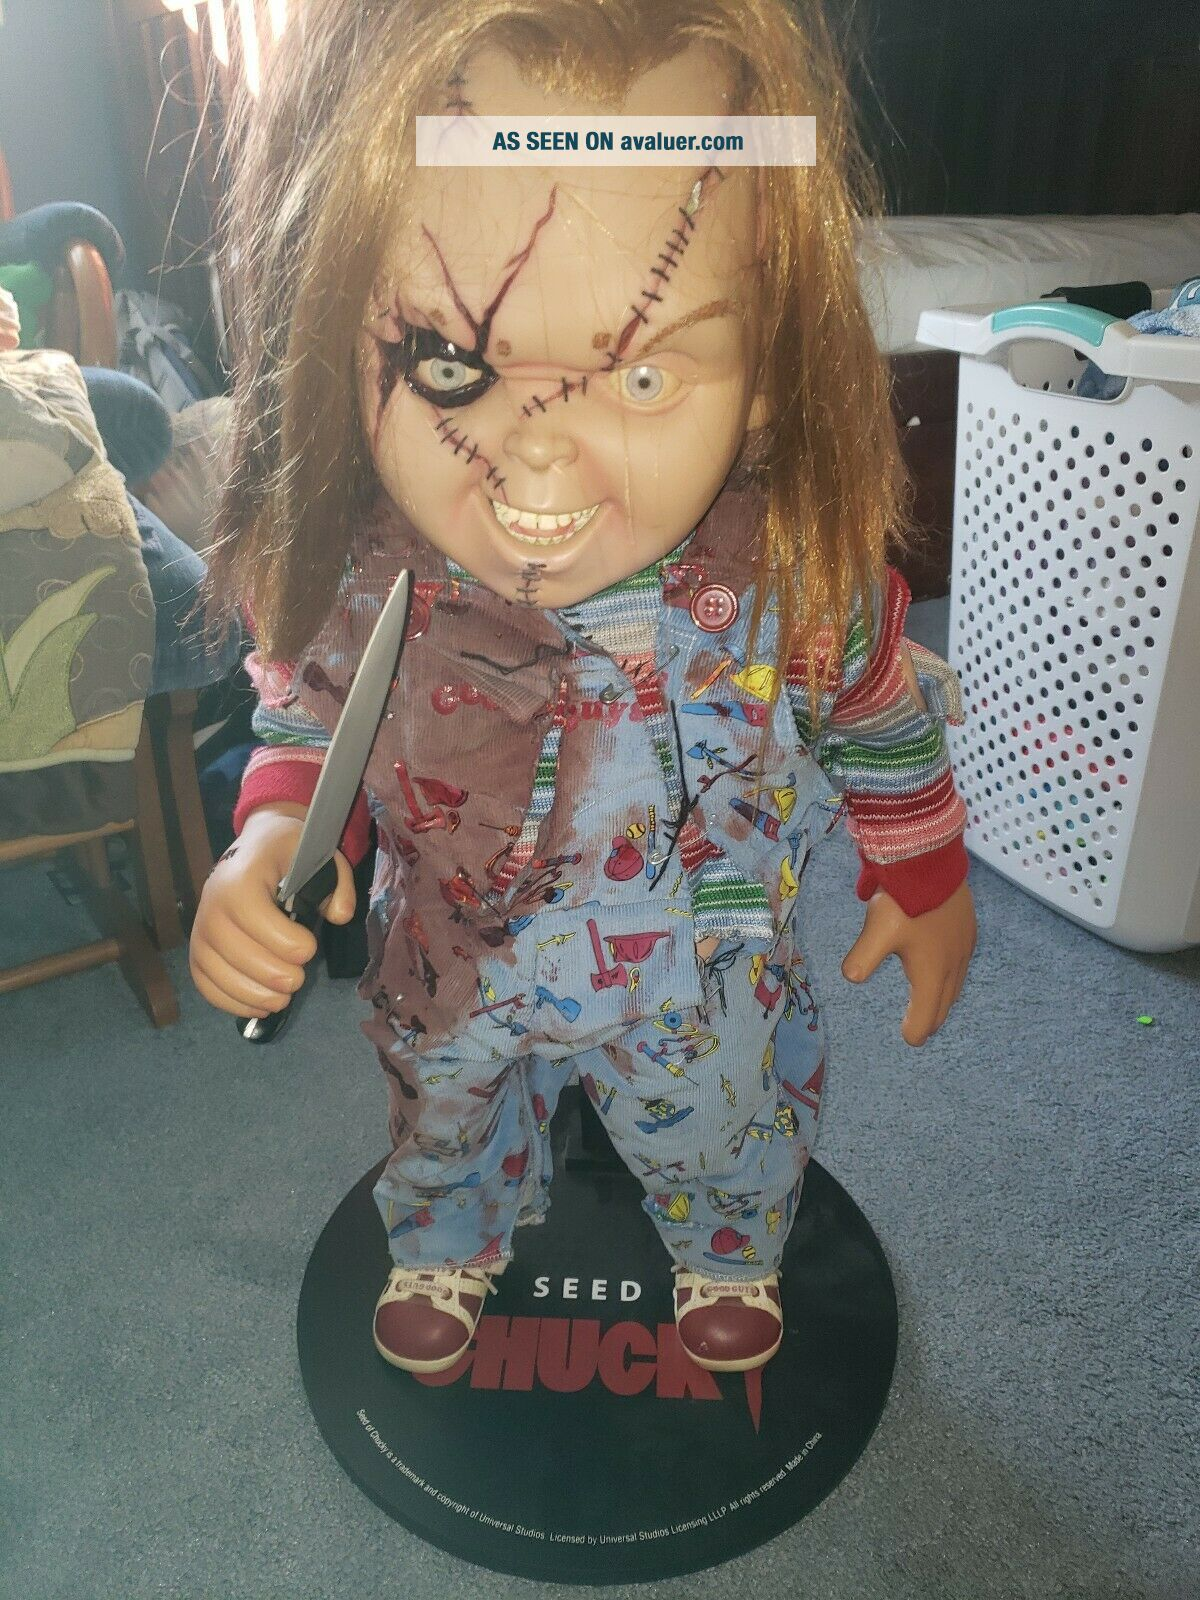 Seed of chucky Doll Childs Play Doll life size Sideshow 1:1 With Knife And Base